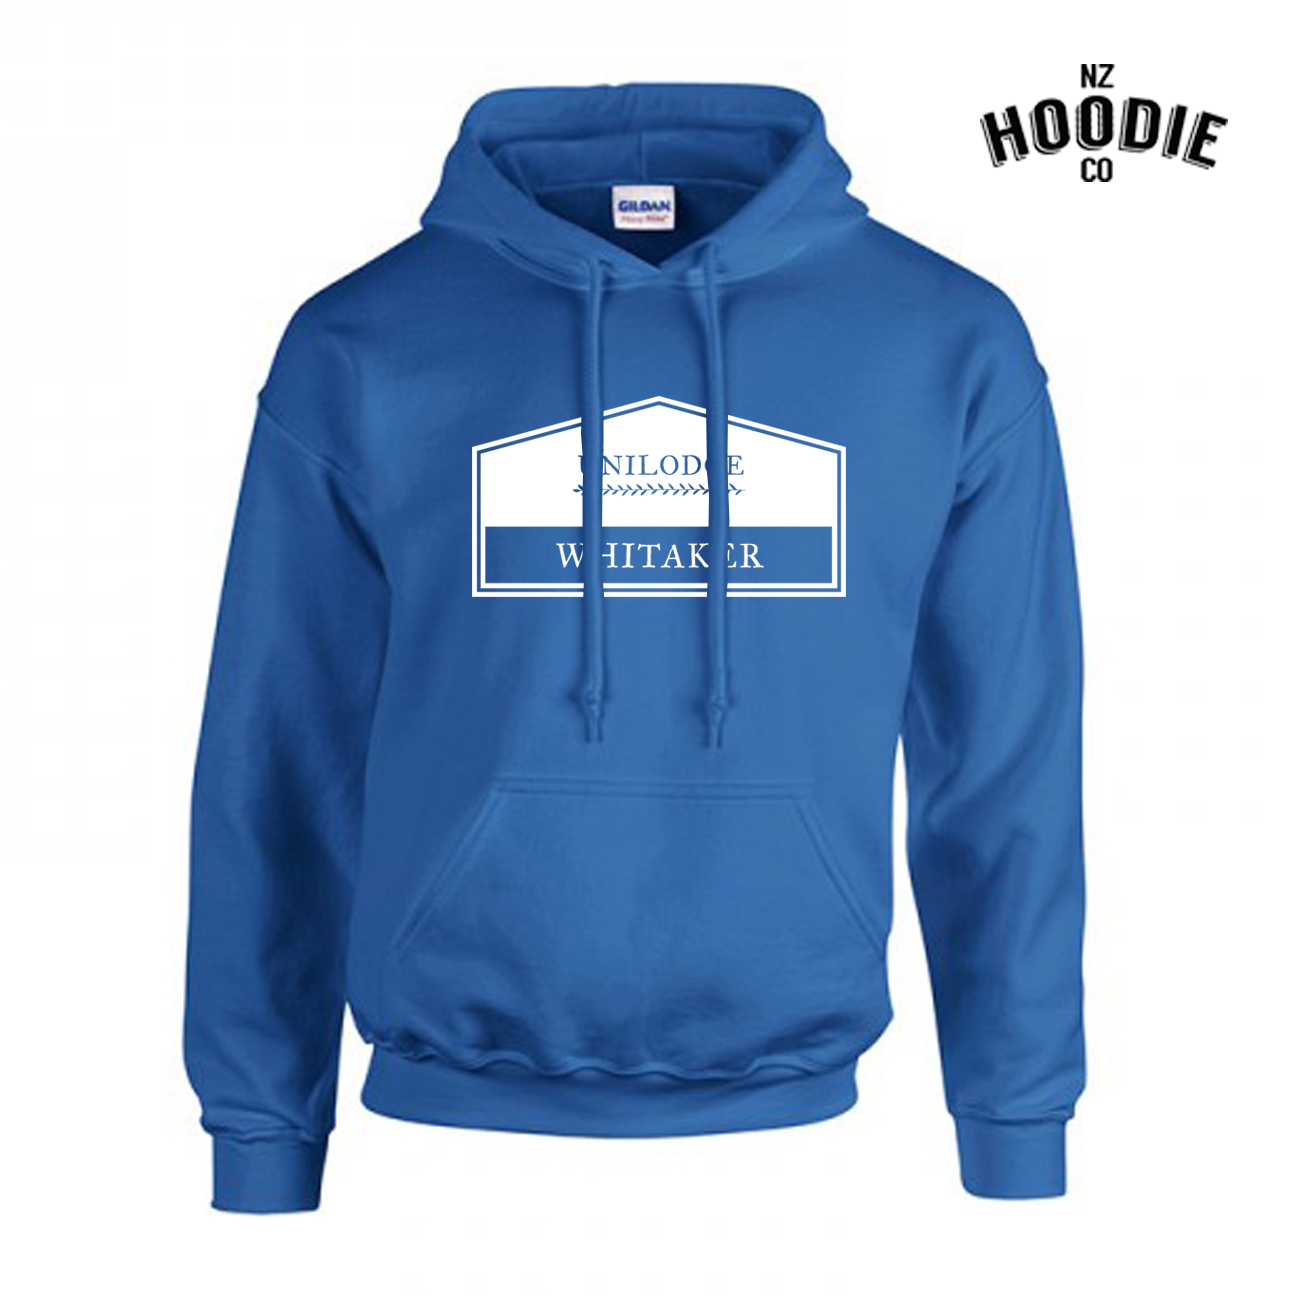 UniLodge Whitaker design on Royal Blue Gilden Hoodie.jpg